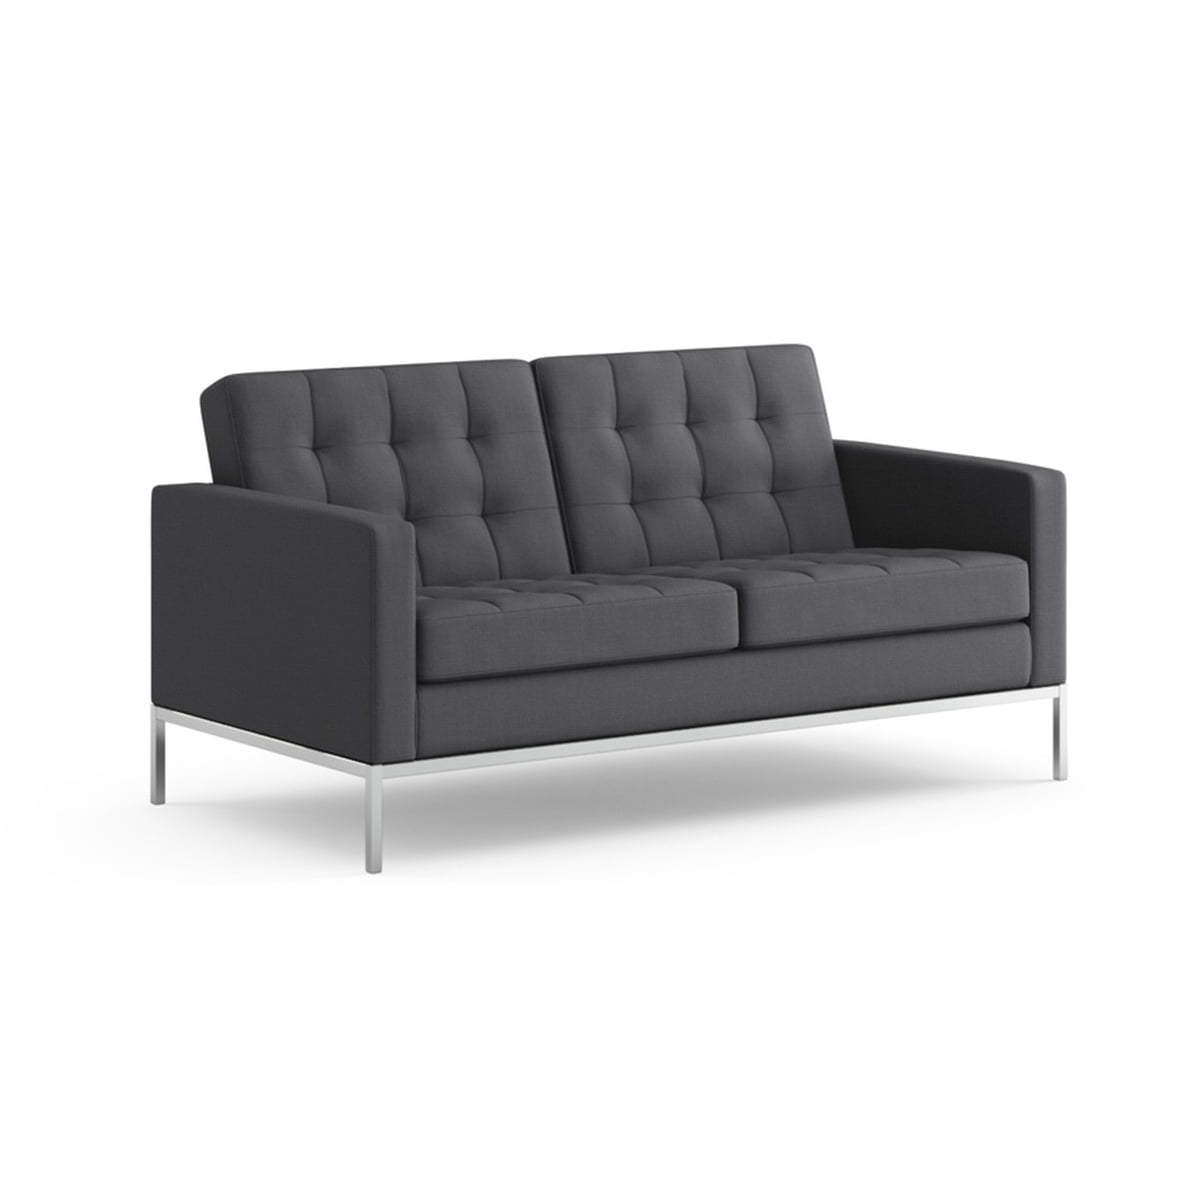 Florence 2 sitzer sofa von knoll connox - Florence knoll sofa gebraucht ...